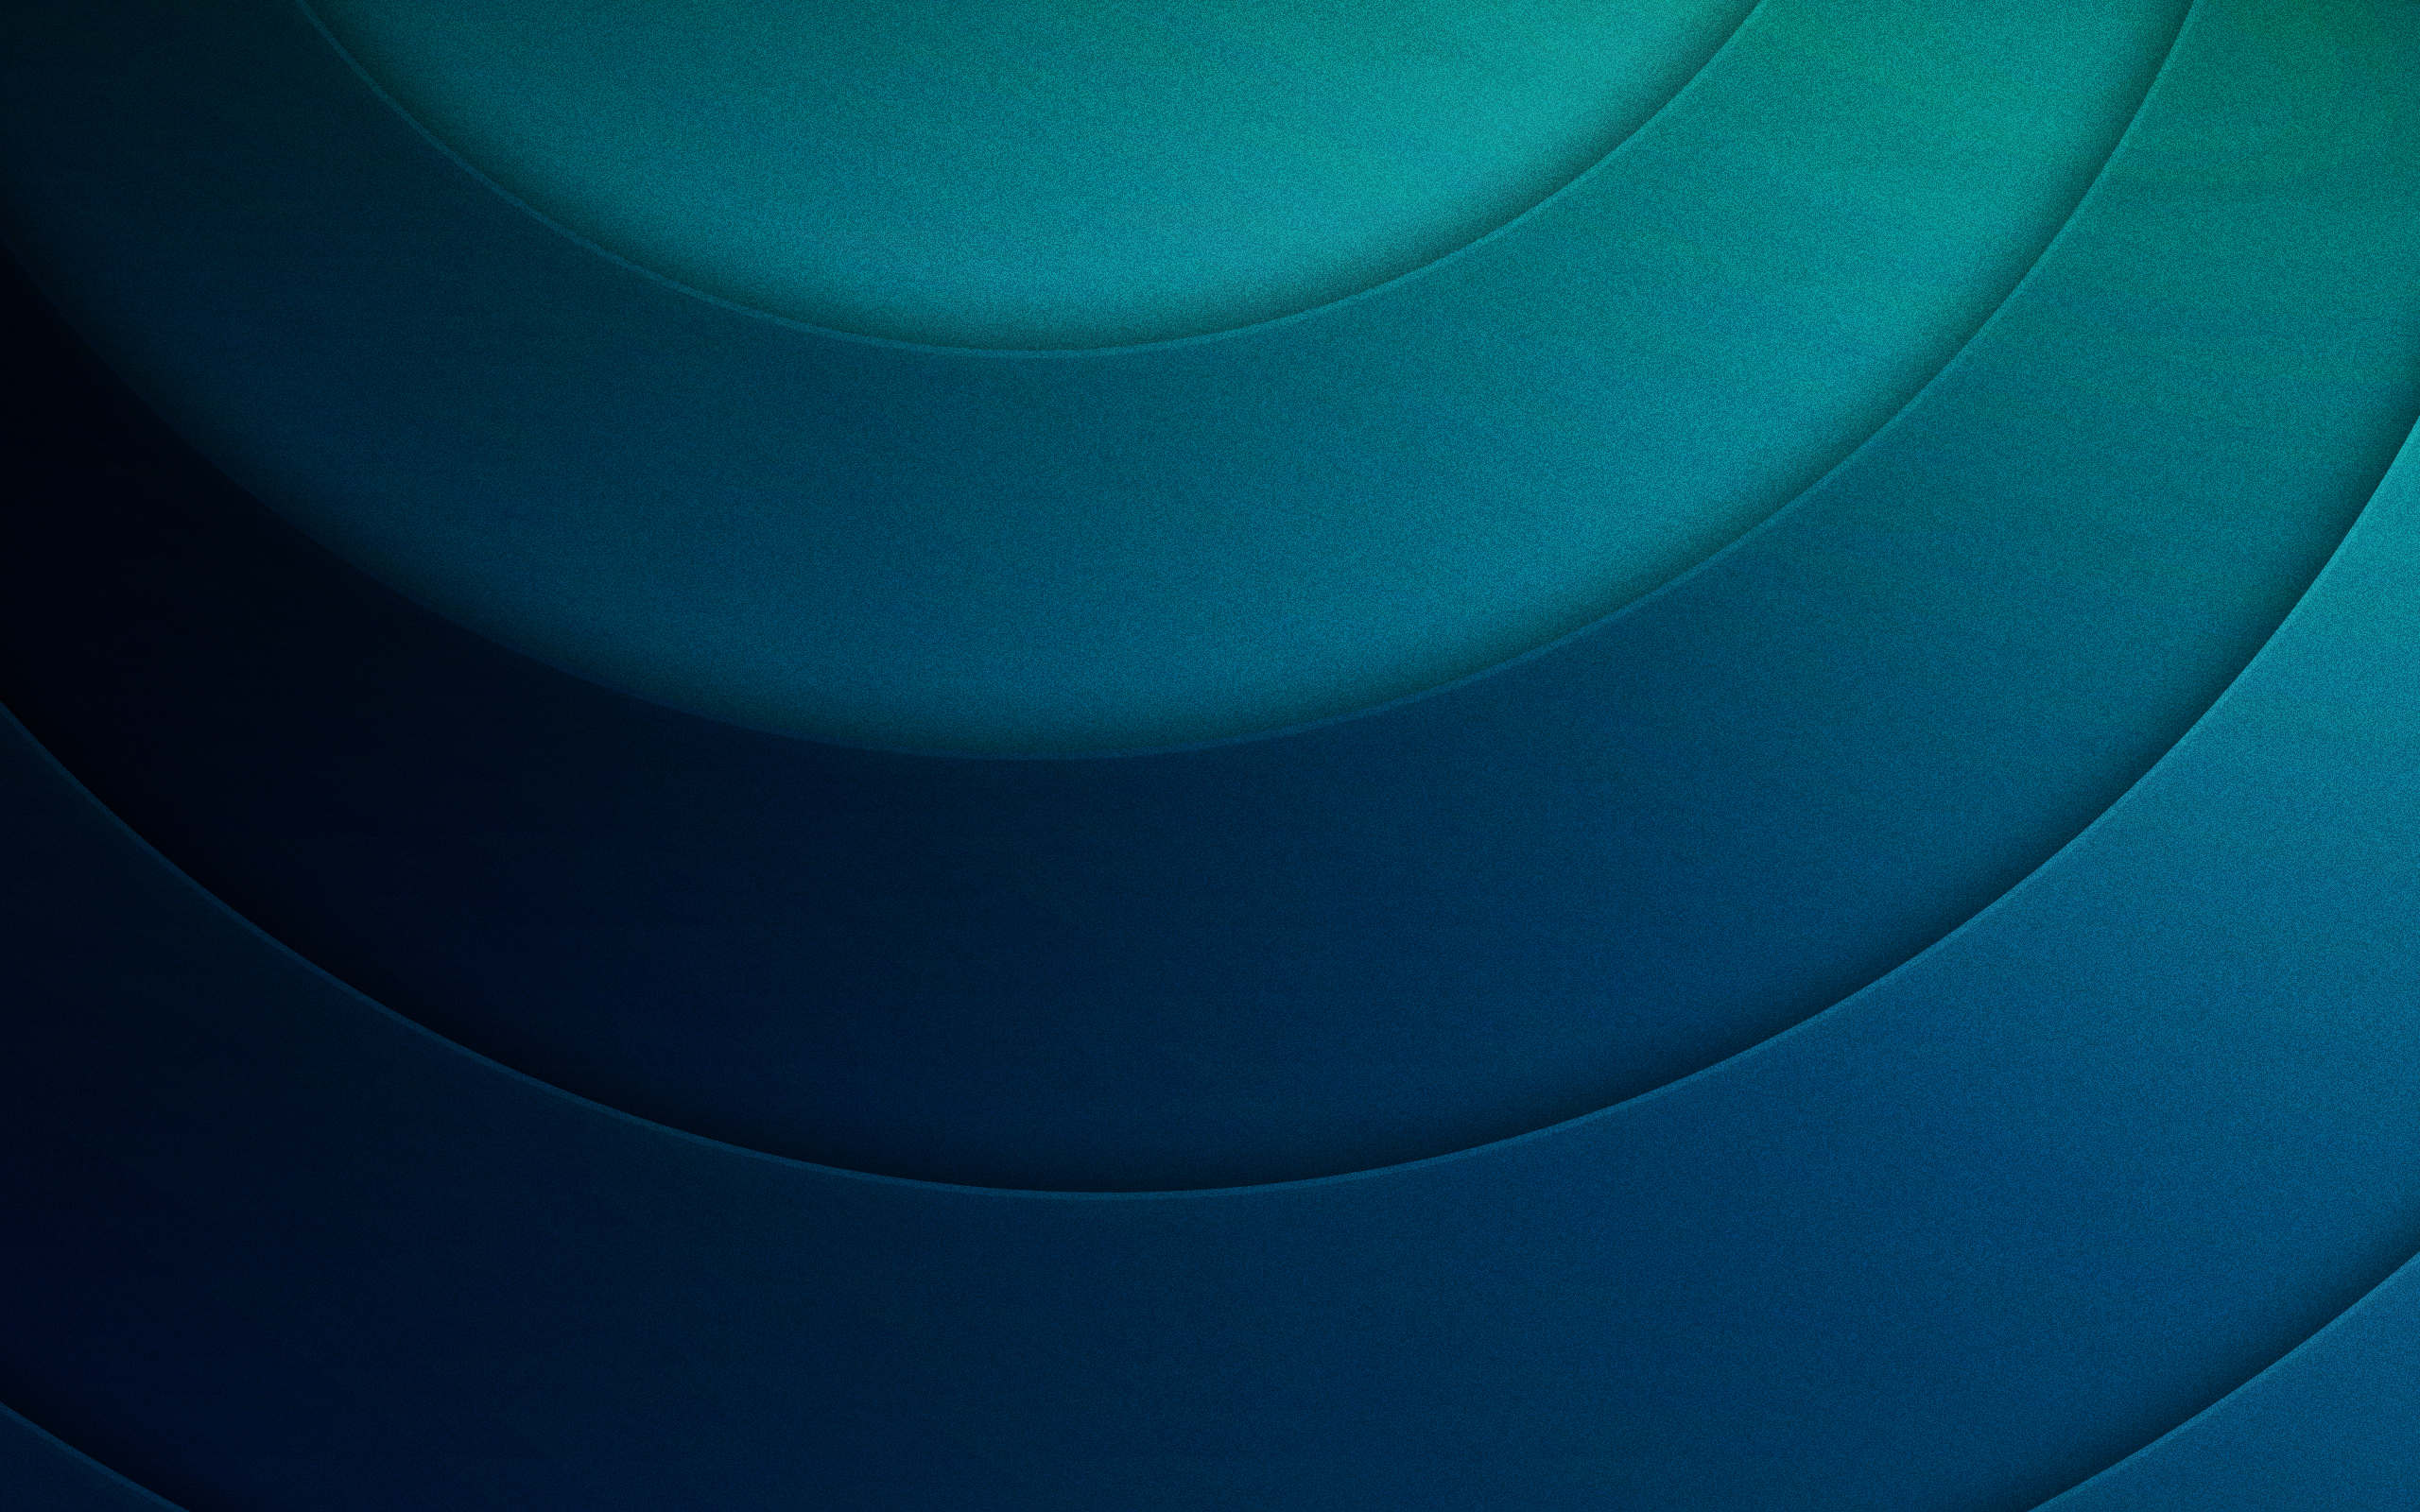 turquoise abstract computer wallpaper - photo #13